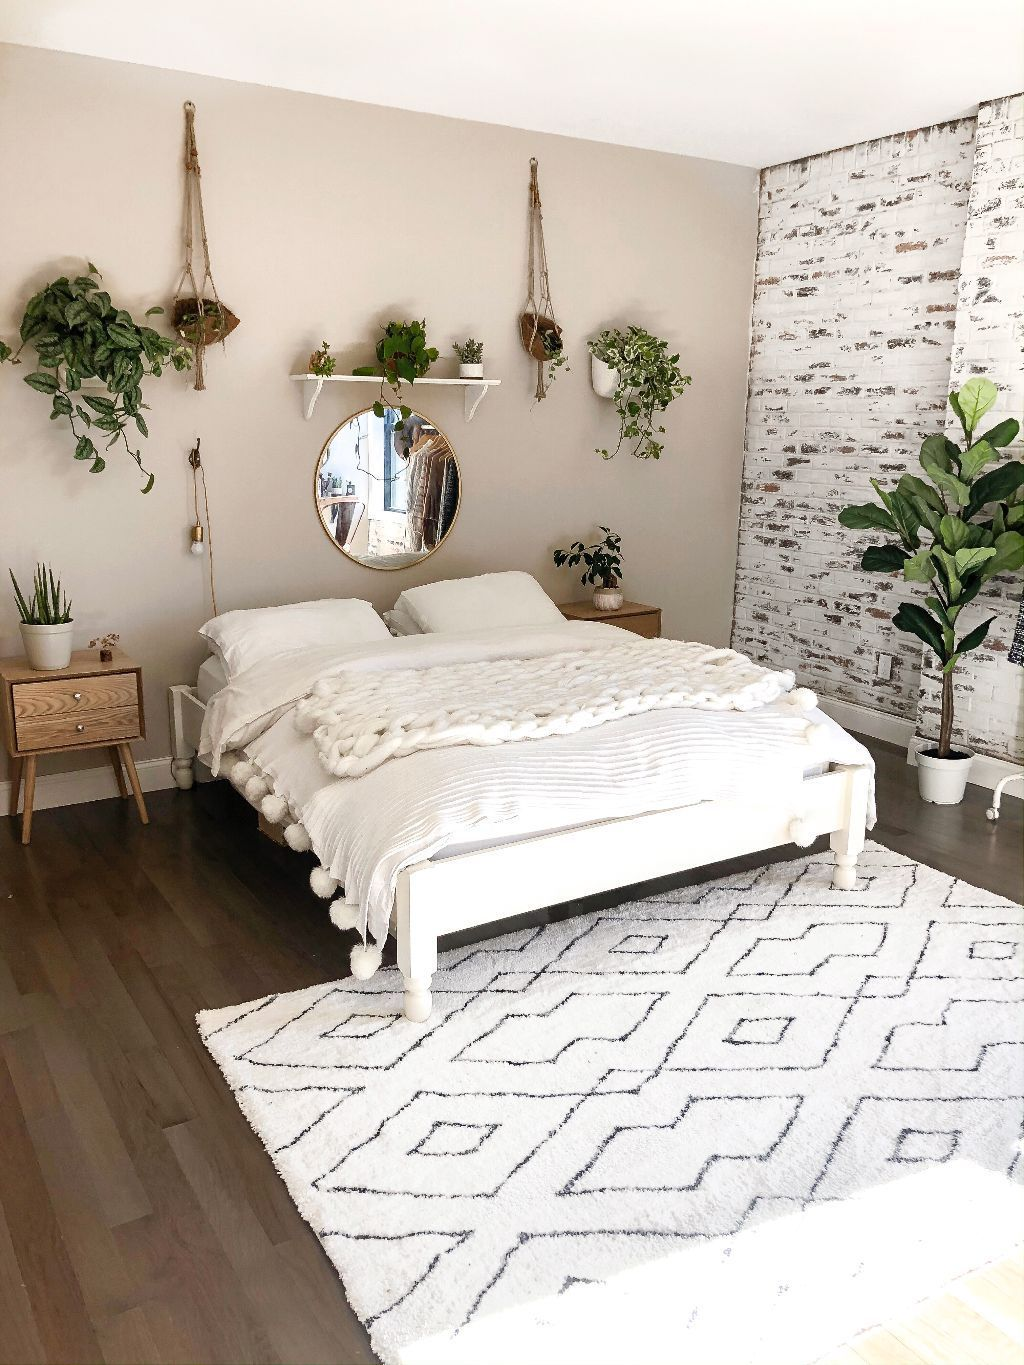 My Boho Minimalist Bedroom Reveal – https://pickndecor.com/ideas